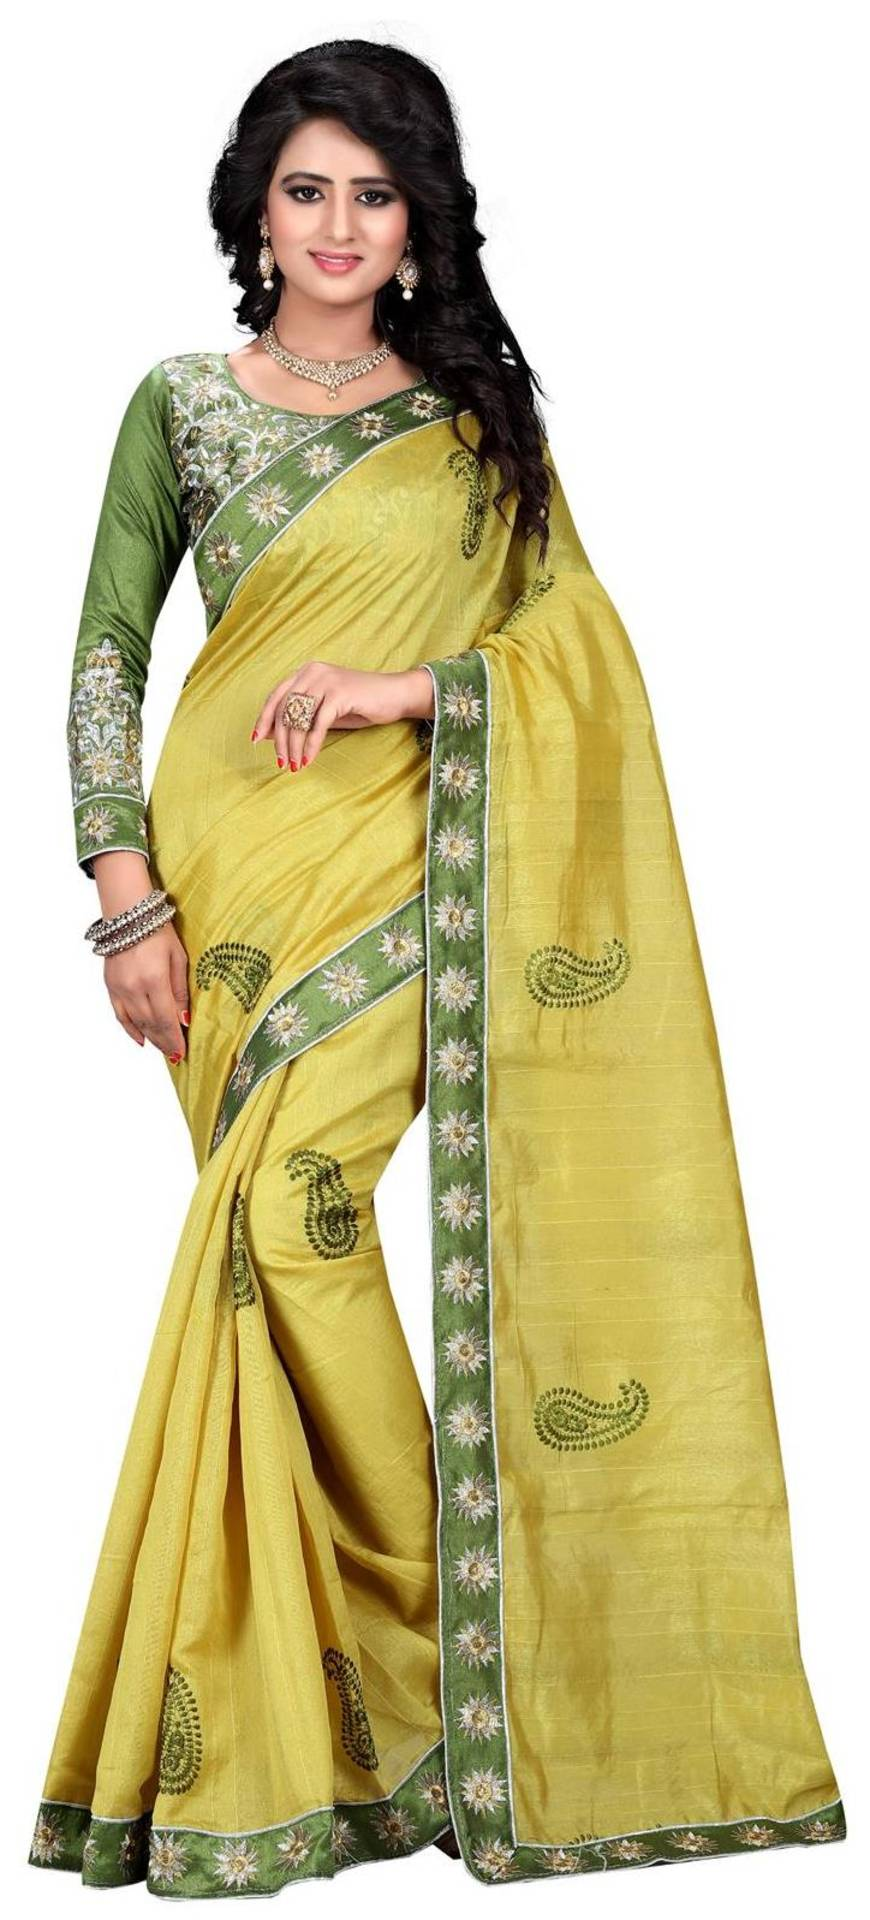 PaytmMall - Sarees Buy 1 Get 2 Free After Cashback